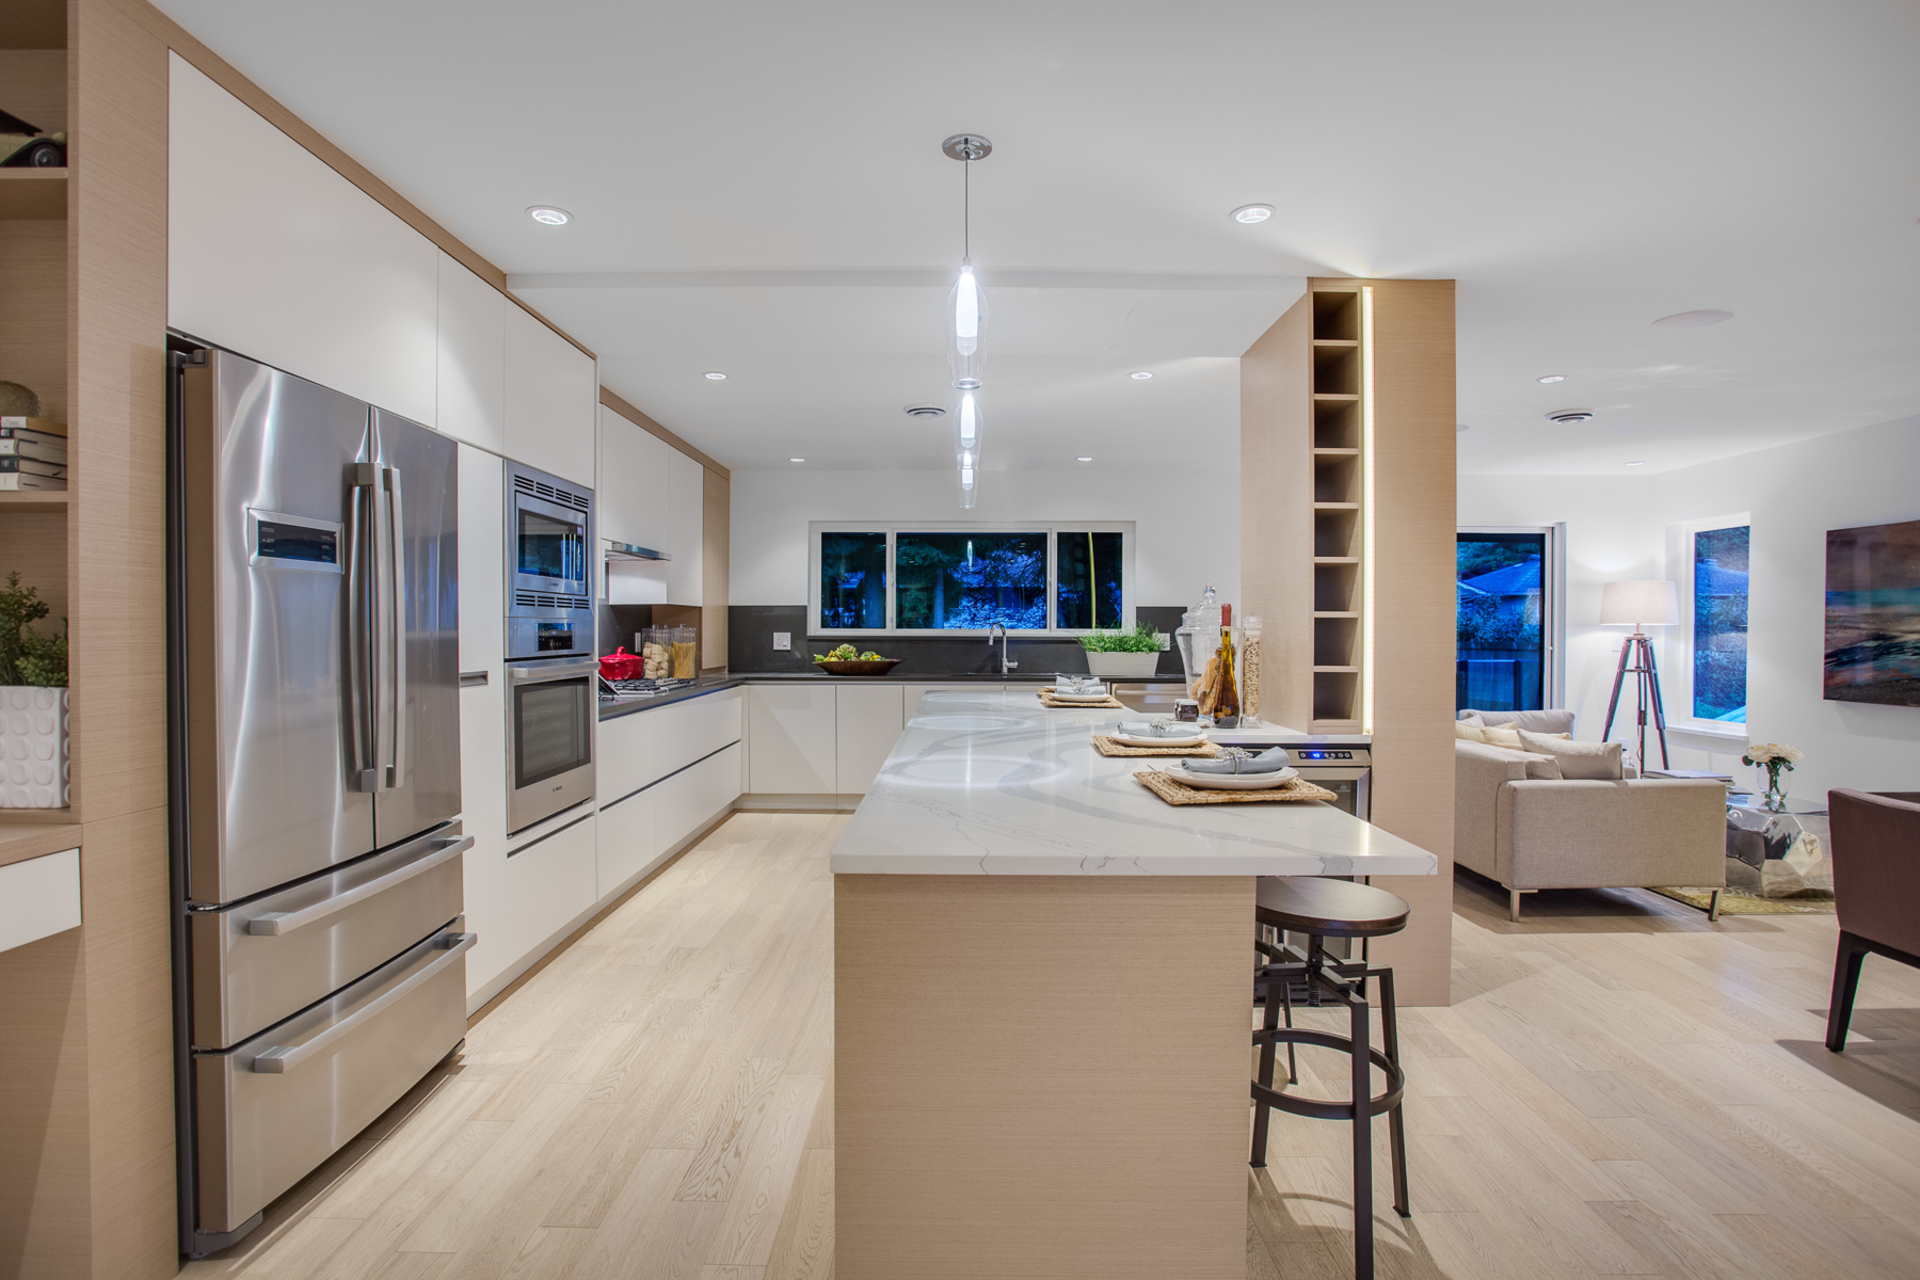 kitchen at 1706 Kilkenny, Westlynn, North Vancouver